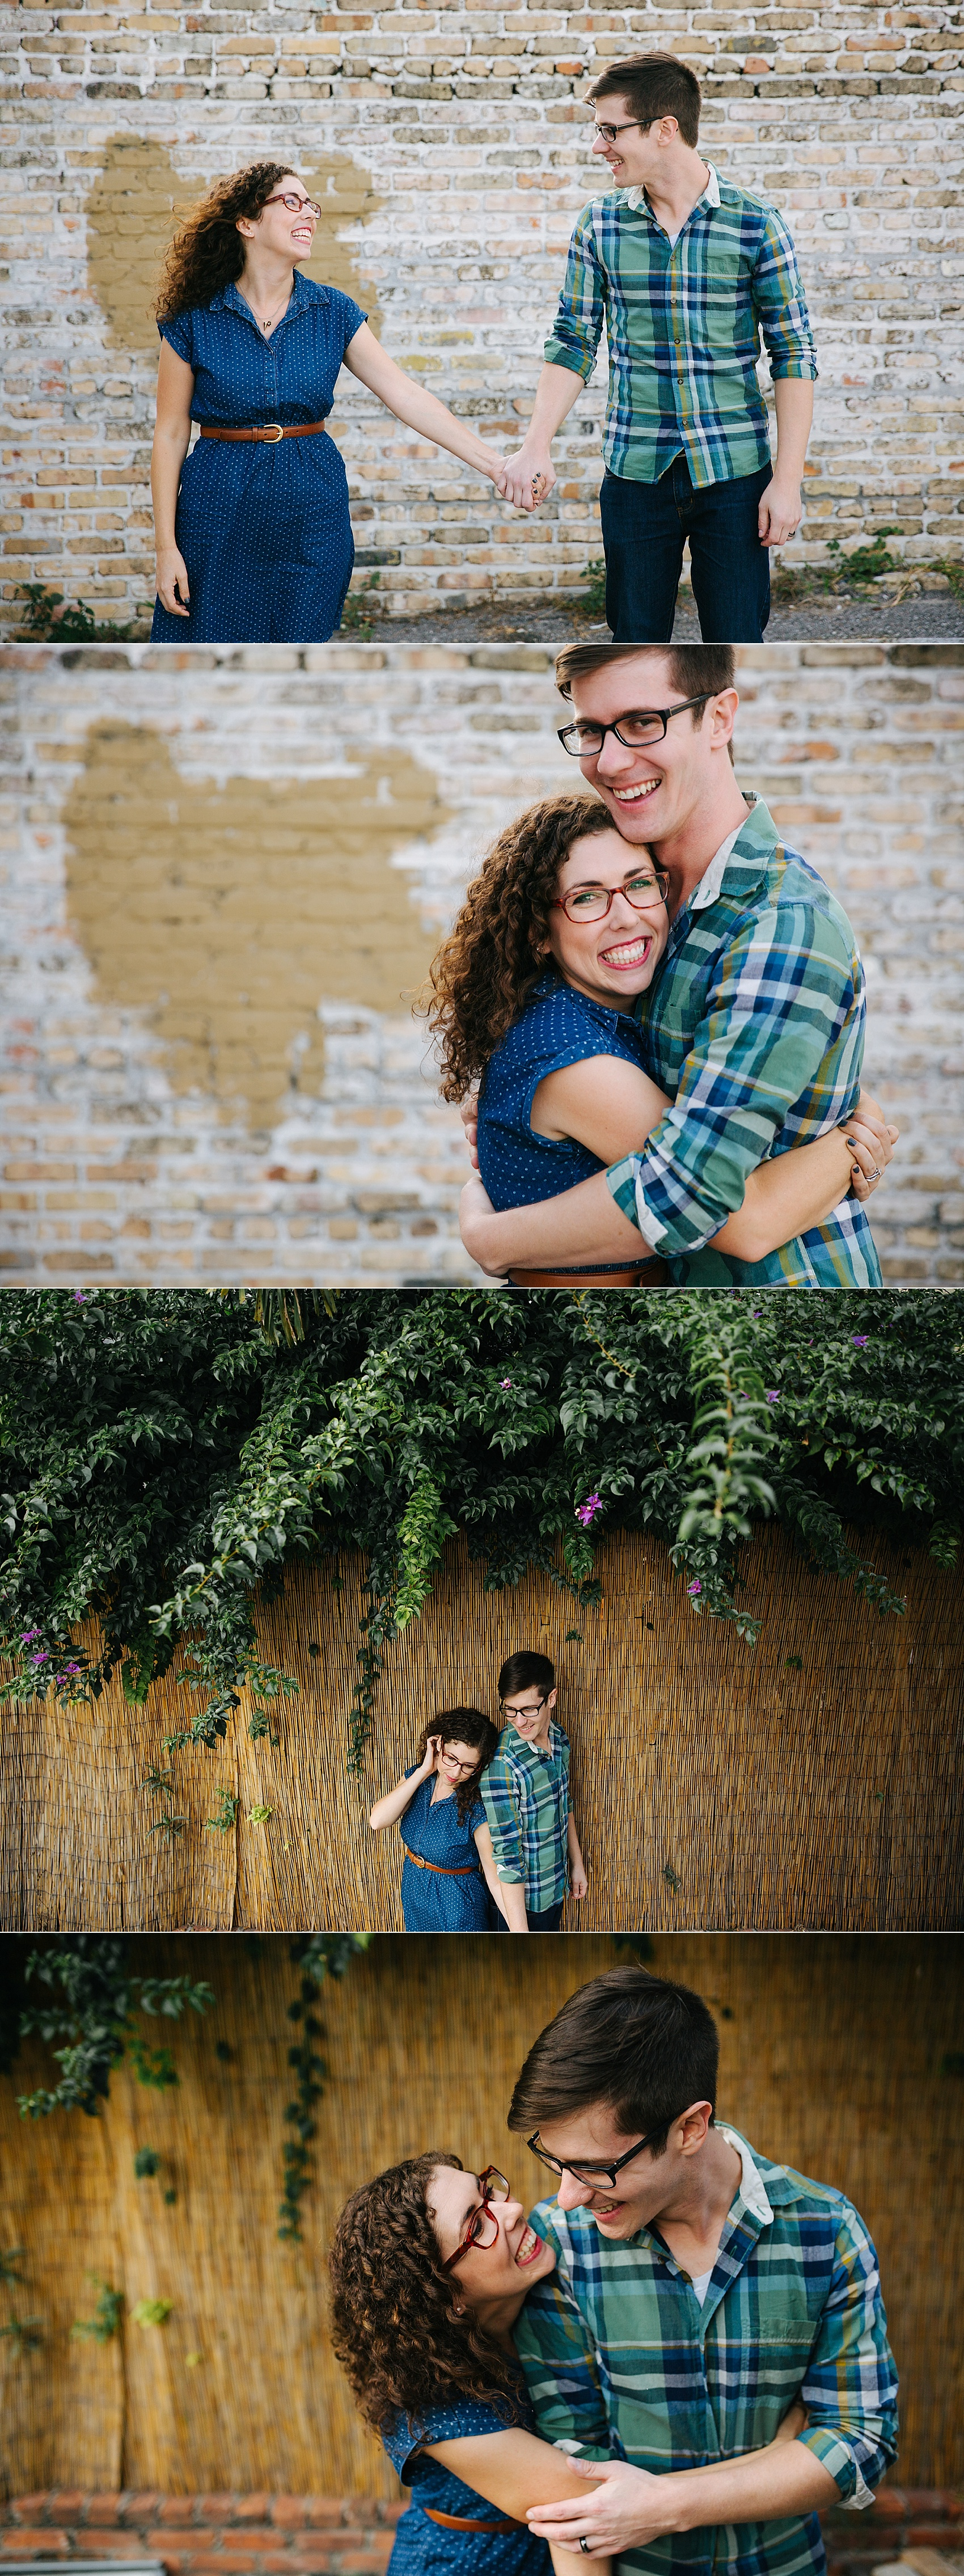 jake-and-katie-engagement-photos-5